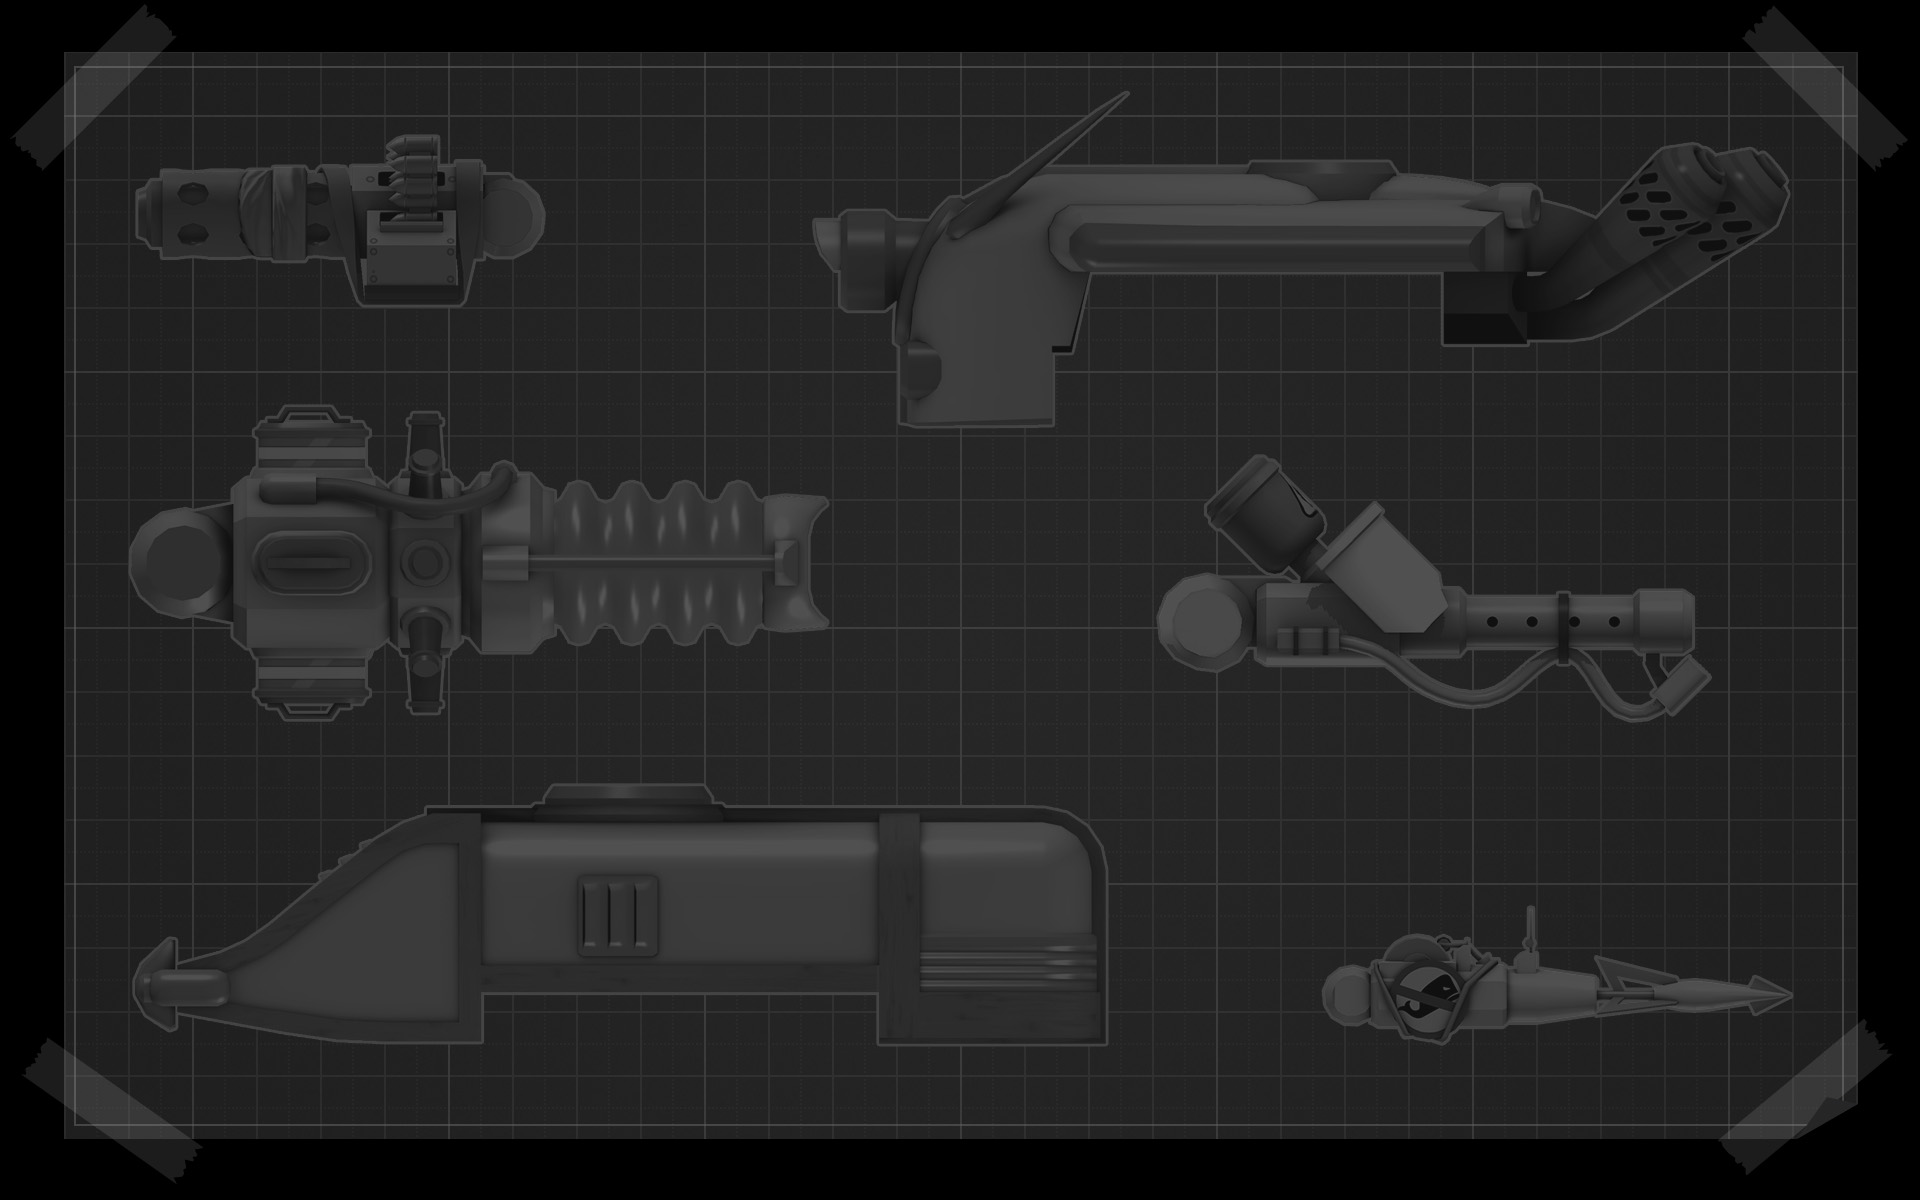 Image gear up background blueprint tank partsg steam trading gear up background blueprint tank partsg malvernweather Image collections